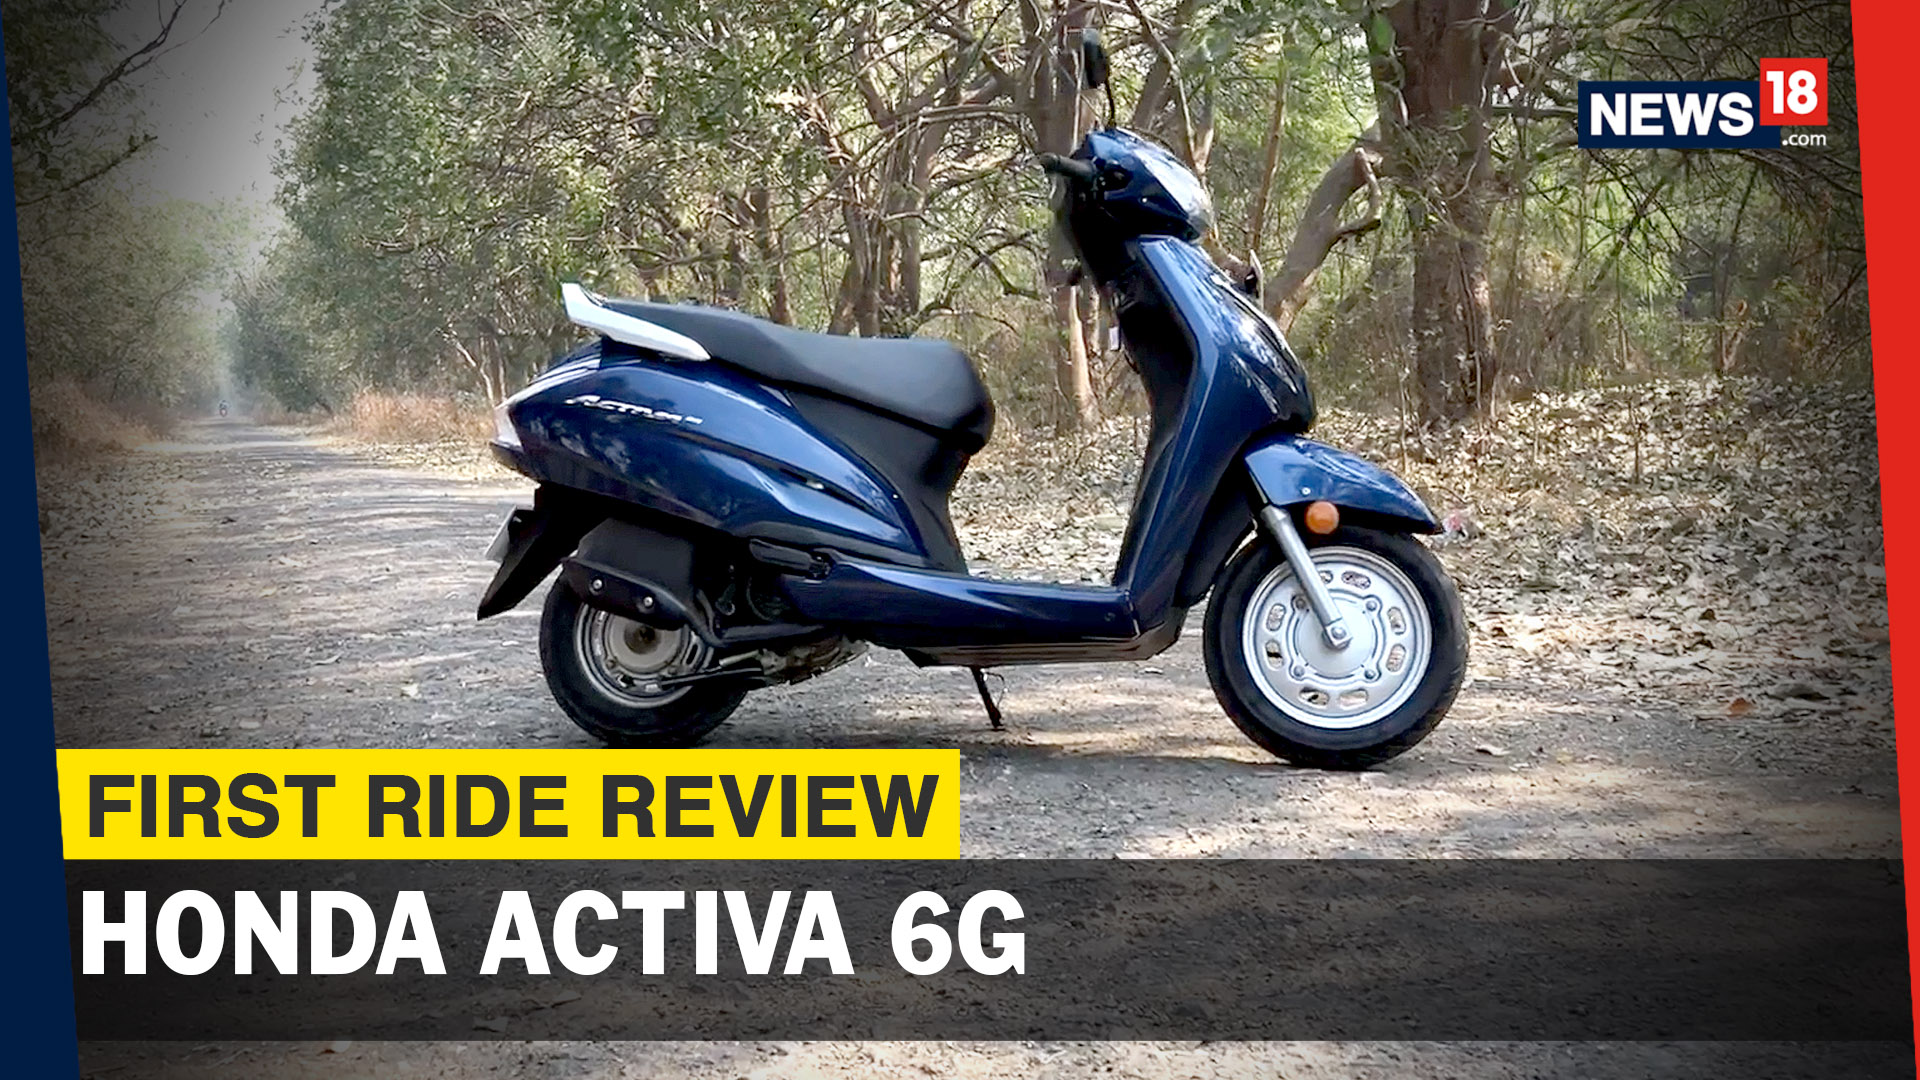 Honda Activa 6G First Ride Review | Greener, Better and a Step-up From its Predecessors